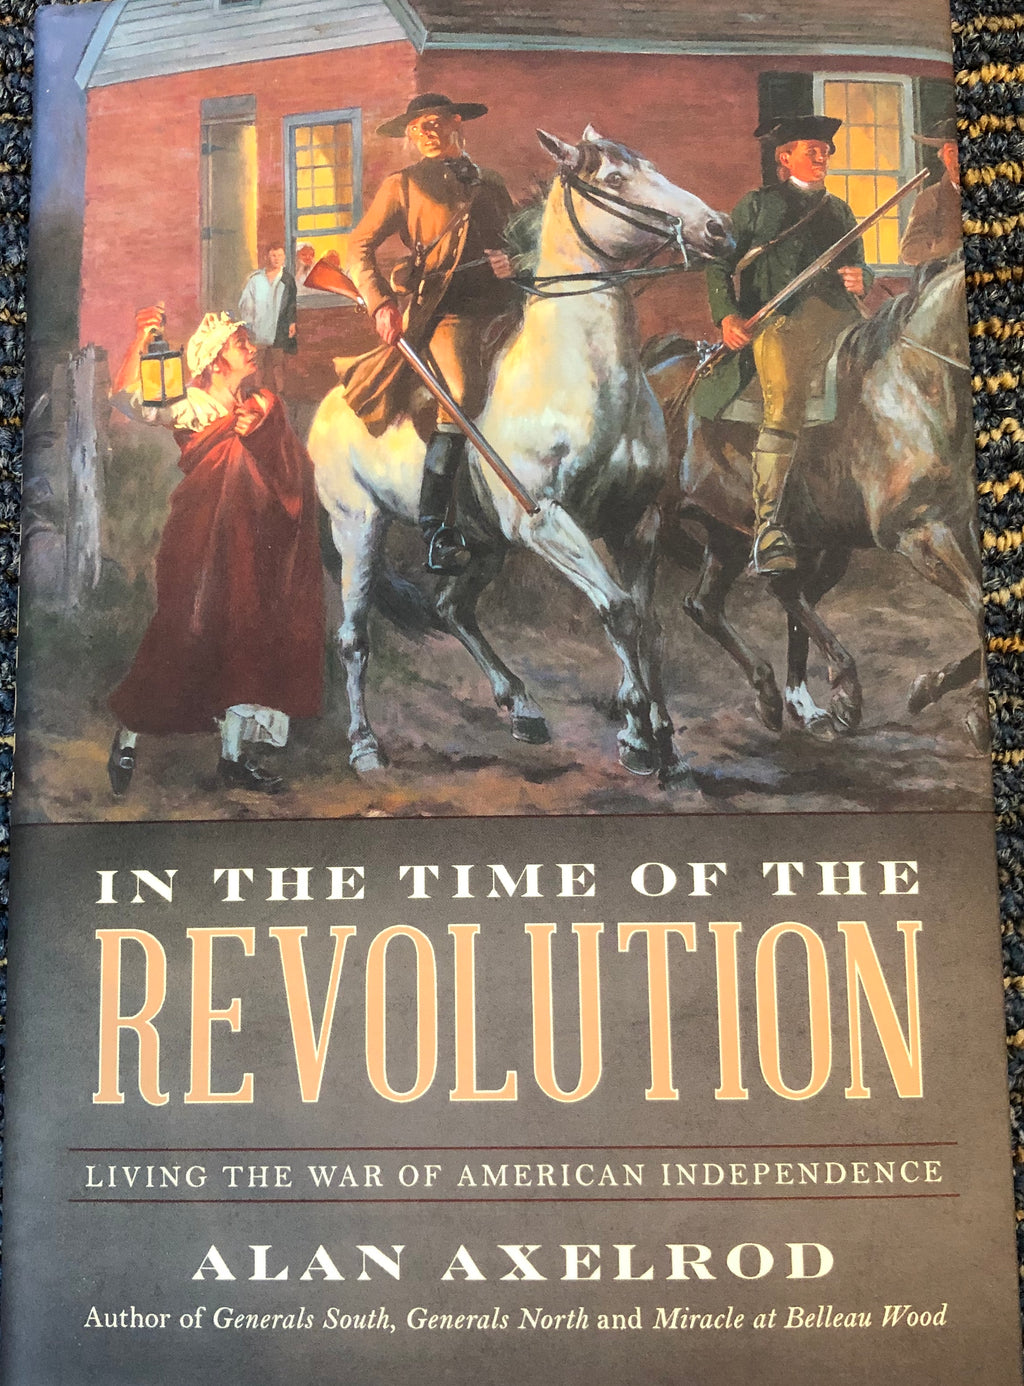 In The Time Of The Revolution by Alan Axelrod